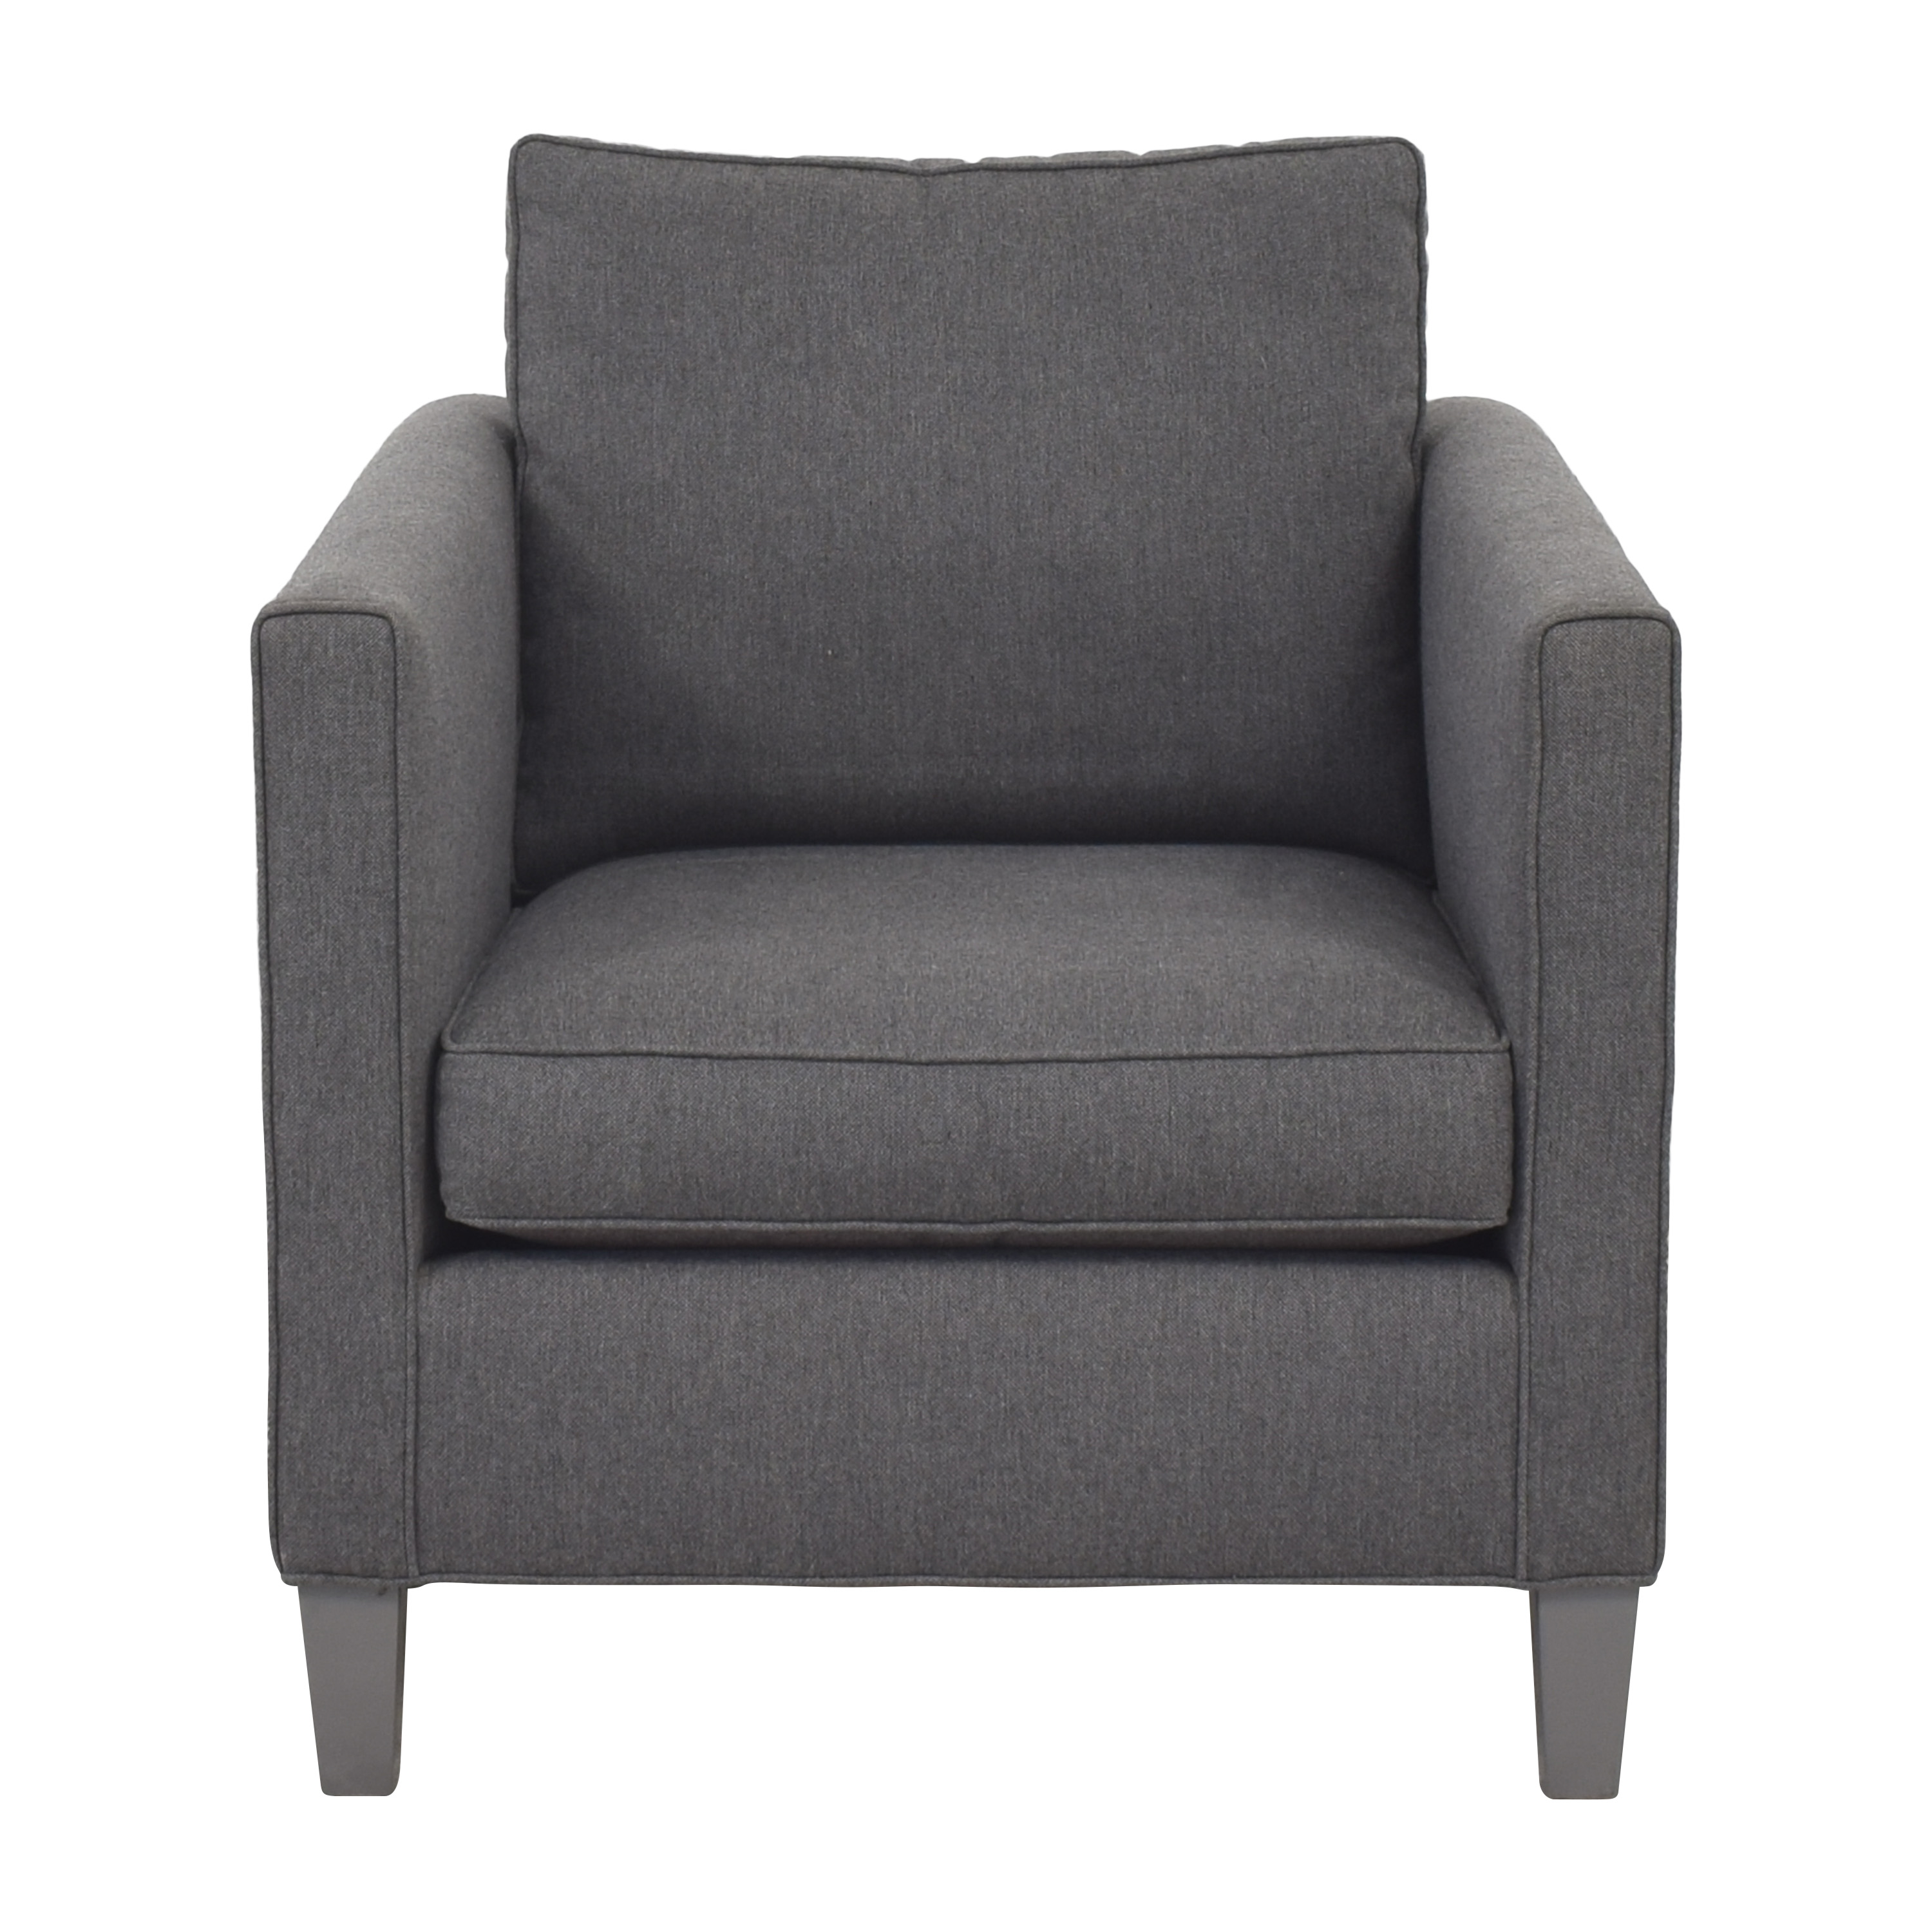 Stickley Furniture Stickley Upholstered Accent Chair pa